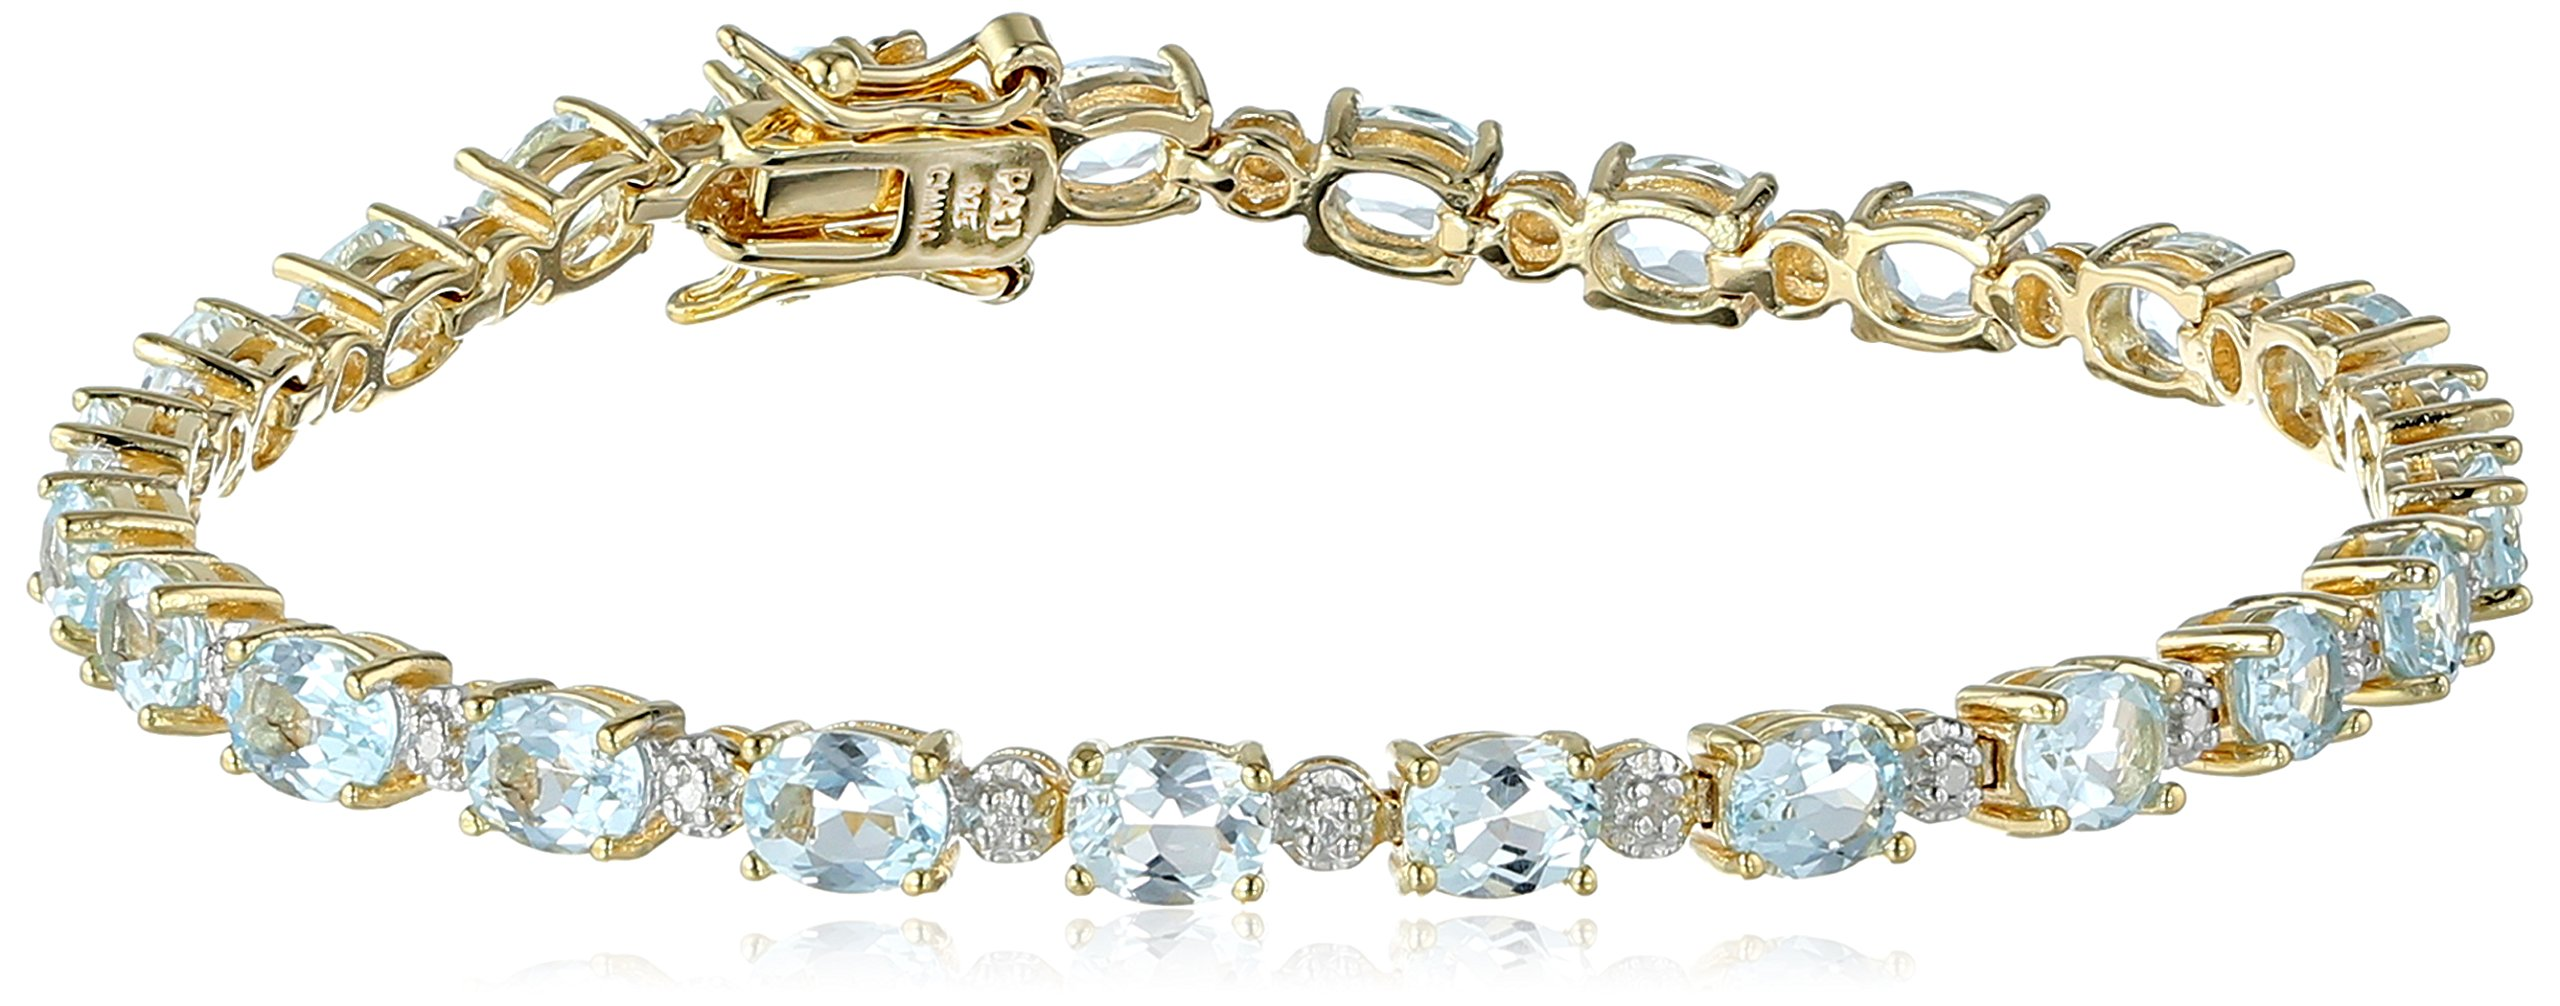 18k-Yellow-Gold-Plated-Sterling-Silver-Diamond-Accent-Two-Tone-Gemstone-and-Tennis-Bracelet-725